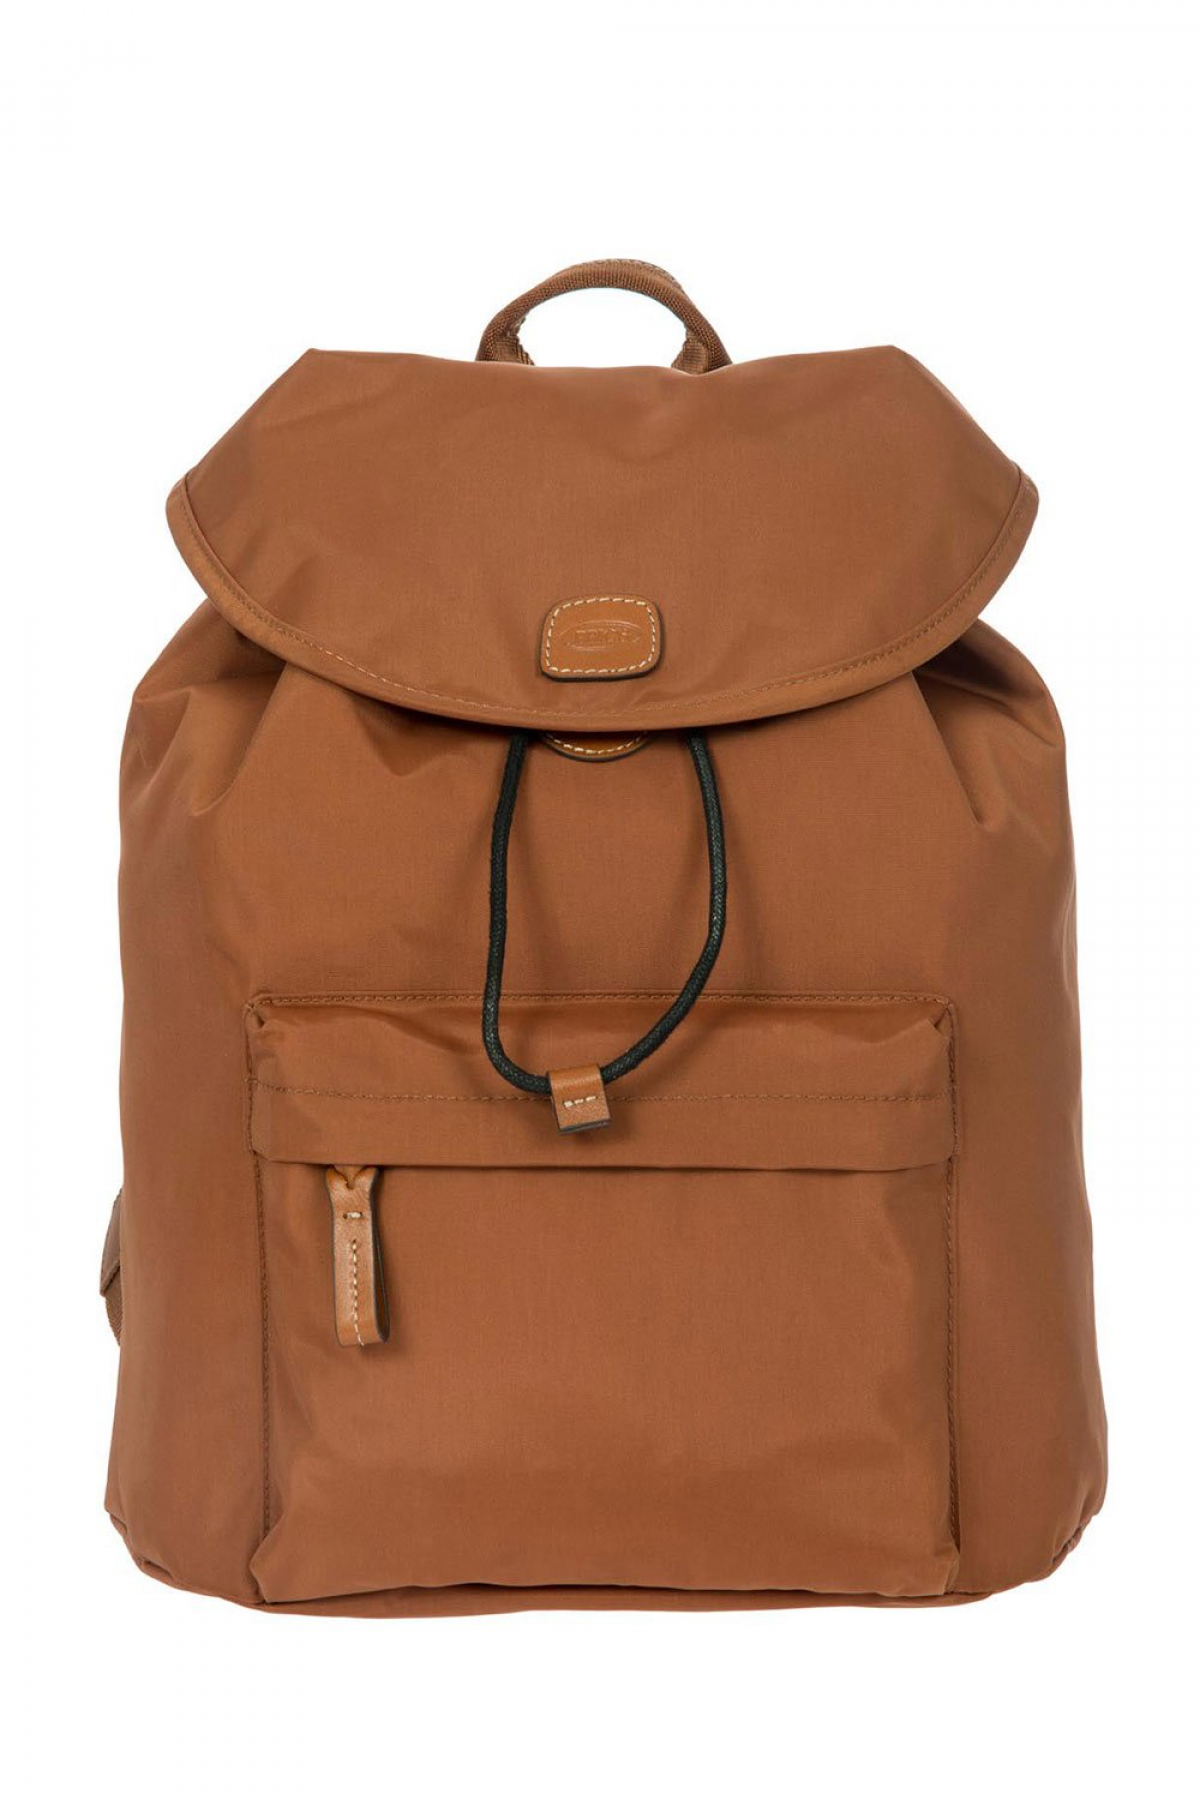 0597 Bric's X-Travel Backpack 30x34x14 cm Brown